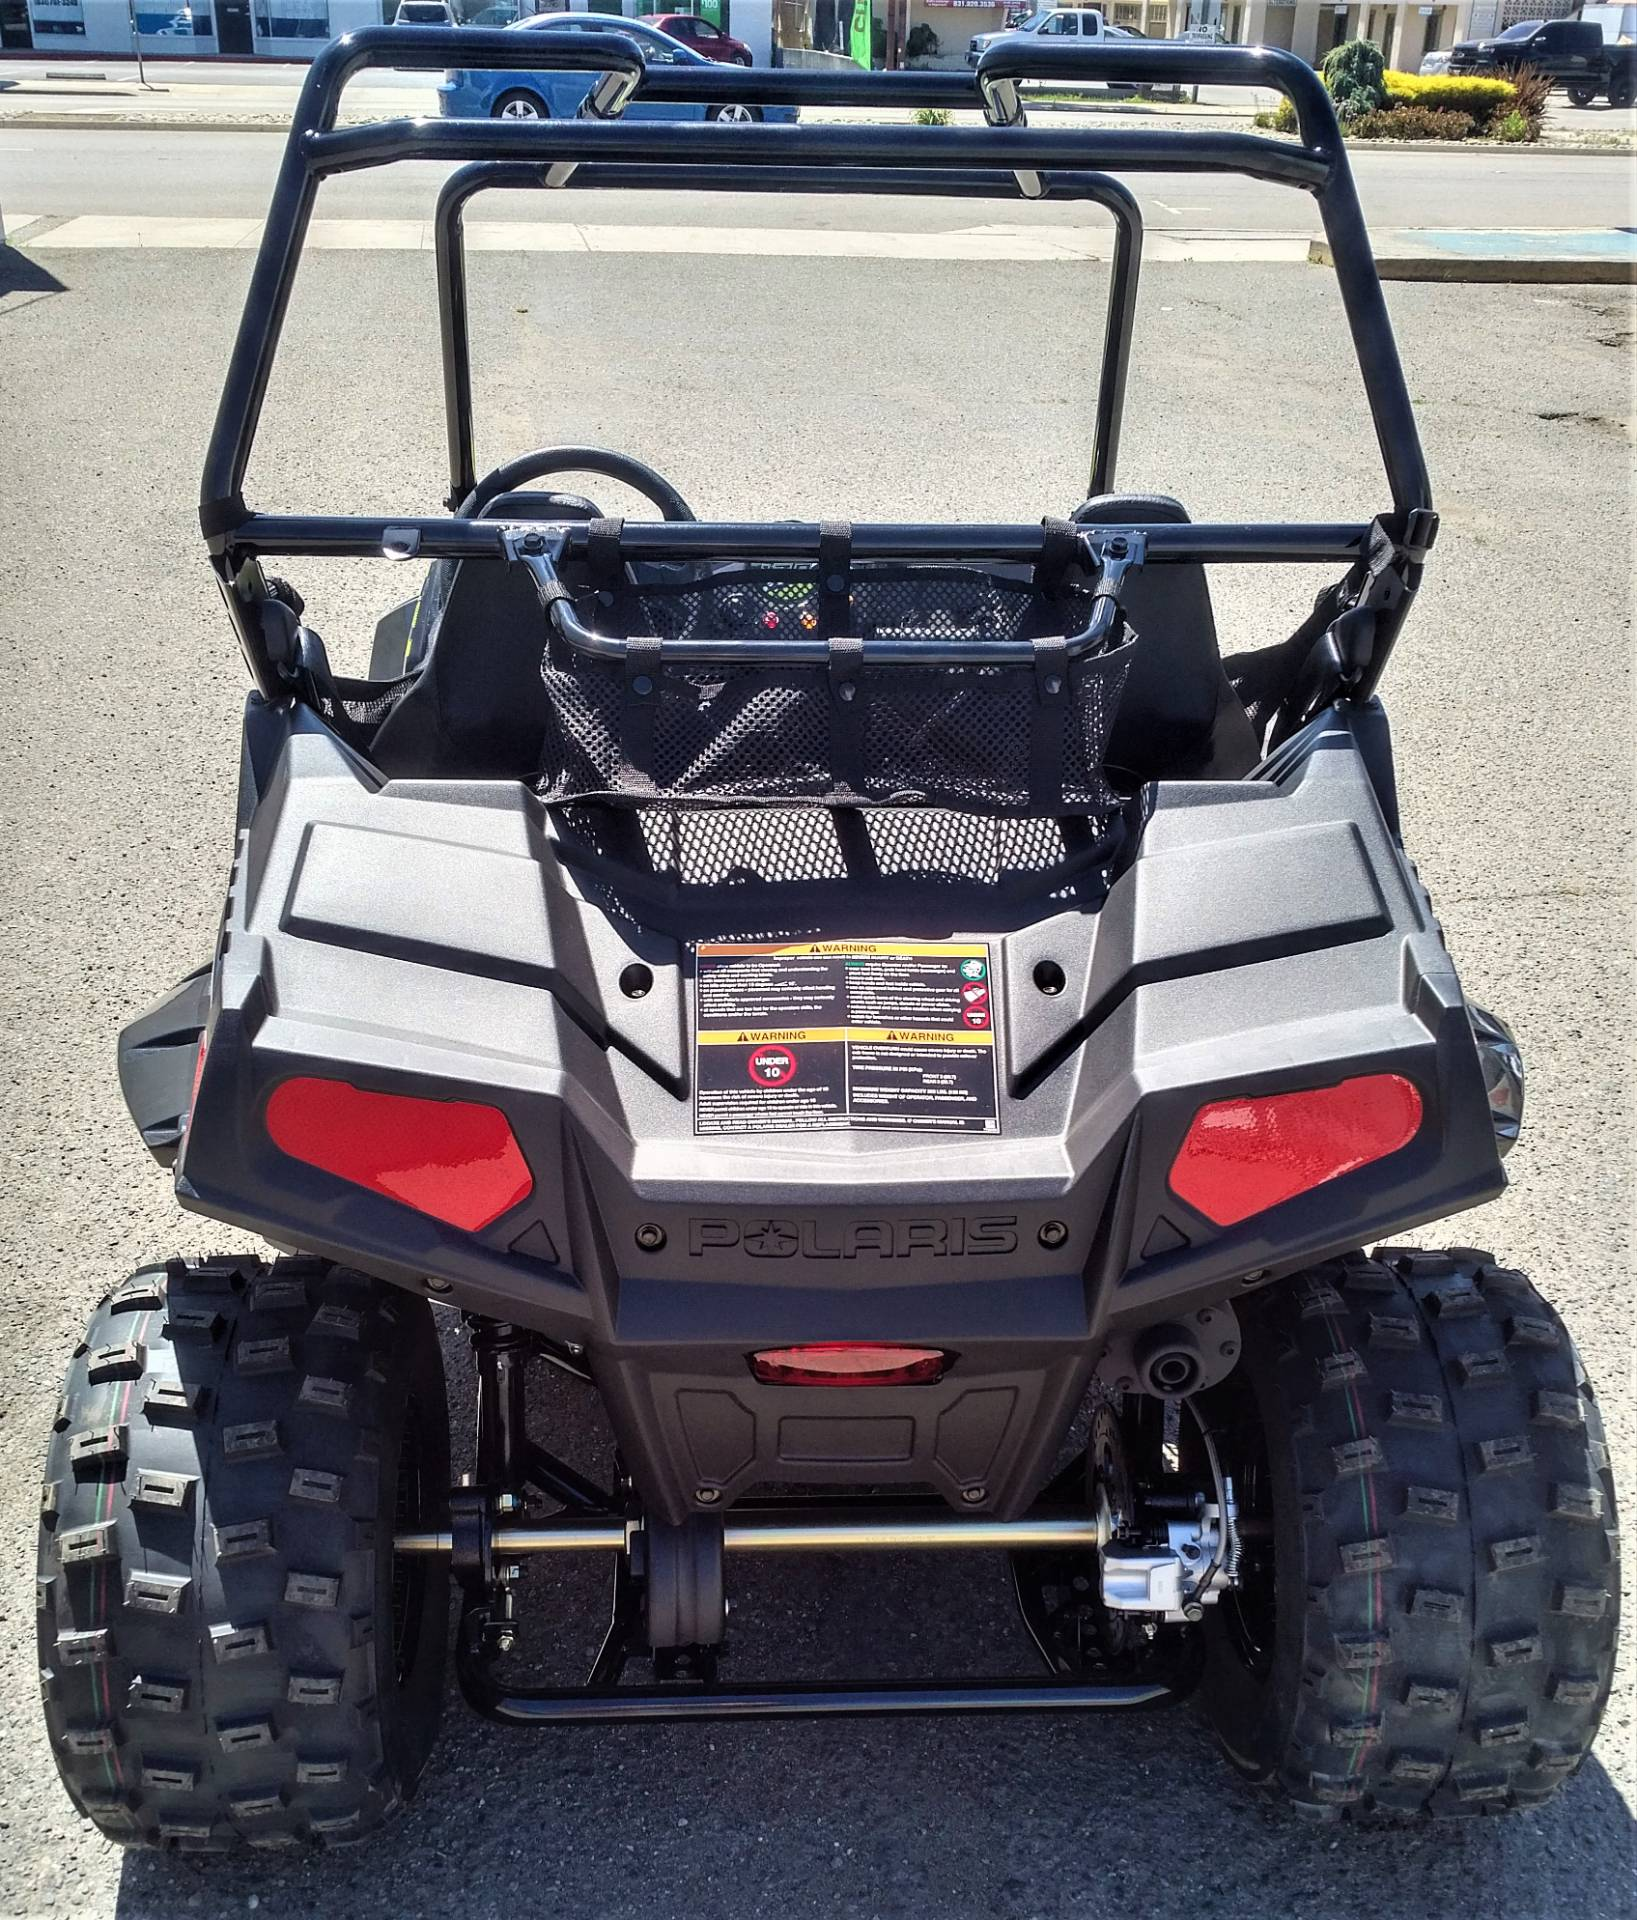 2021 Polaris RZR 170 EFI in Salinas, California - Photo 8